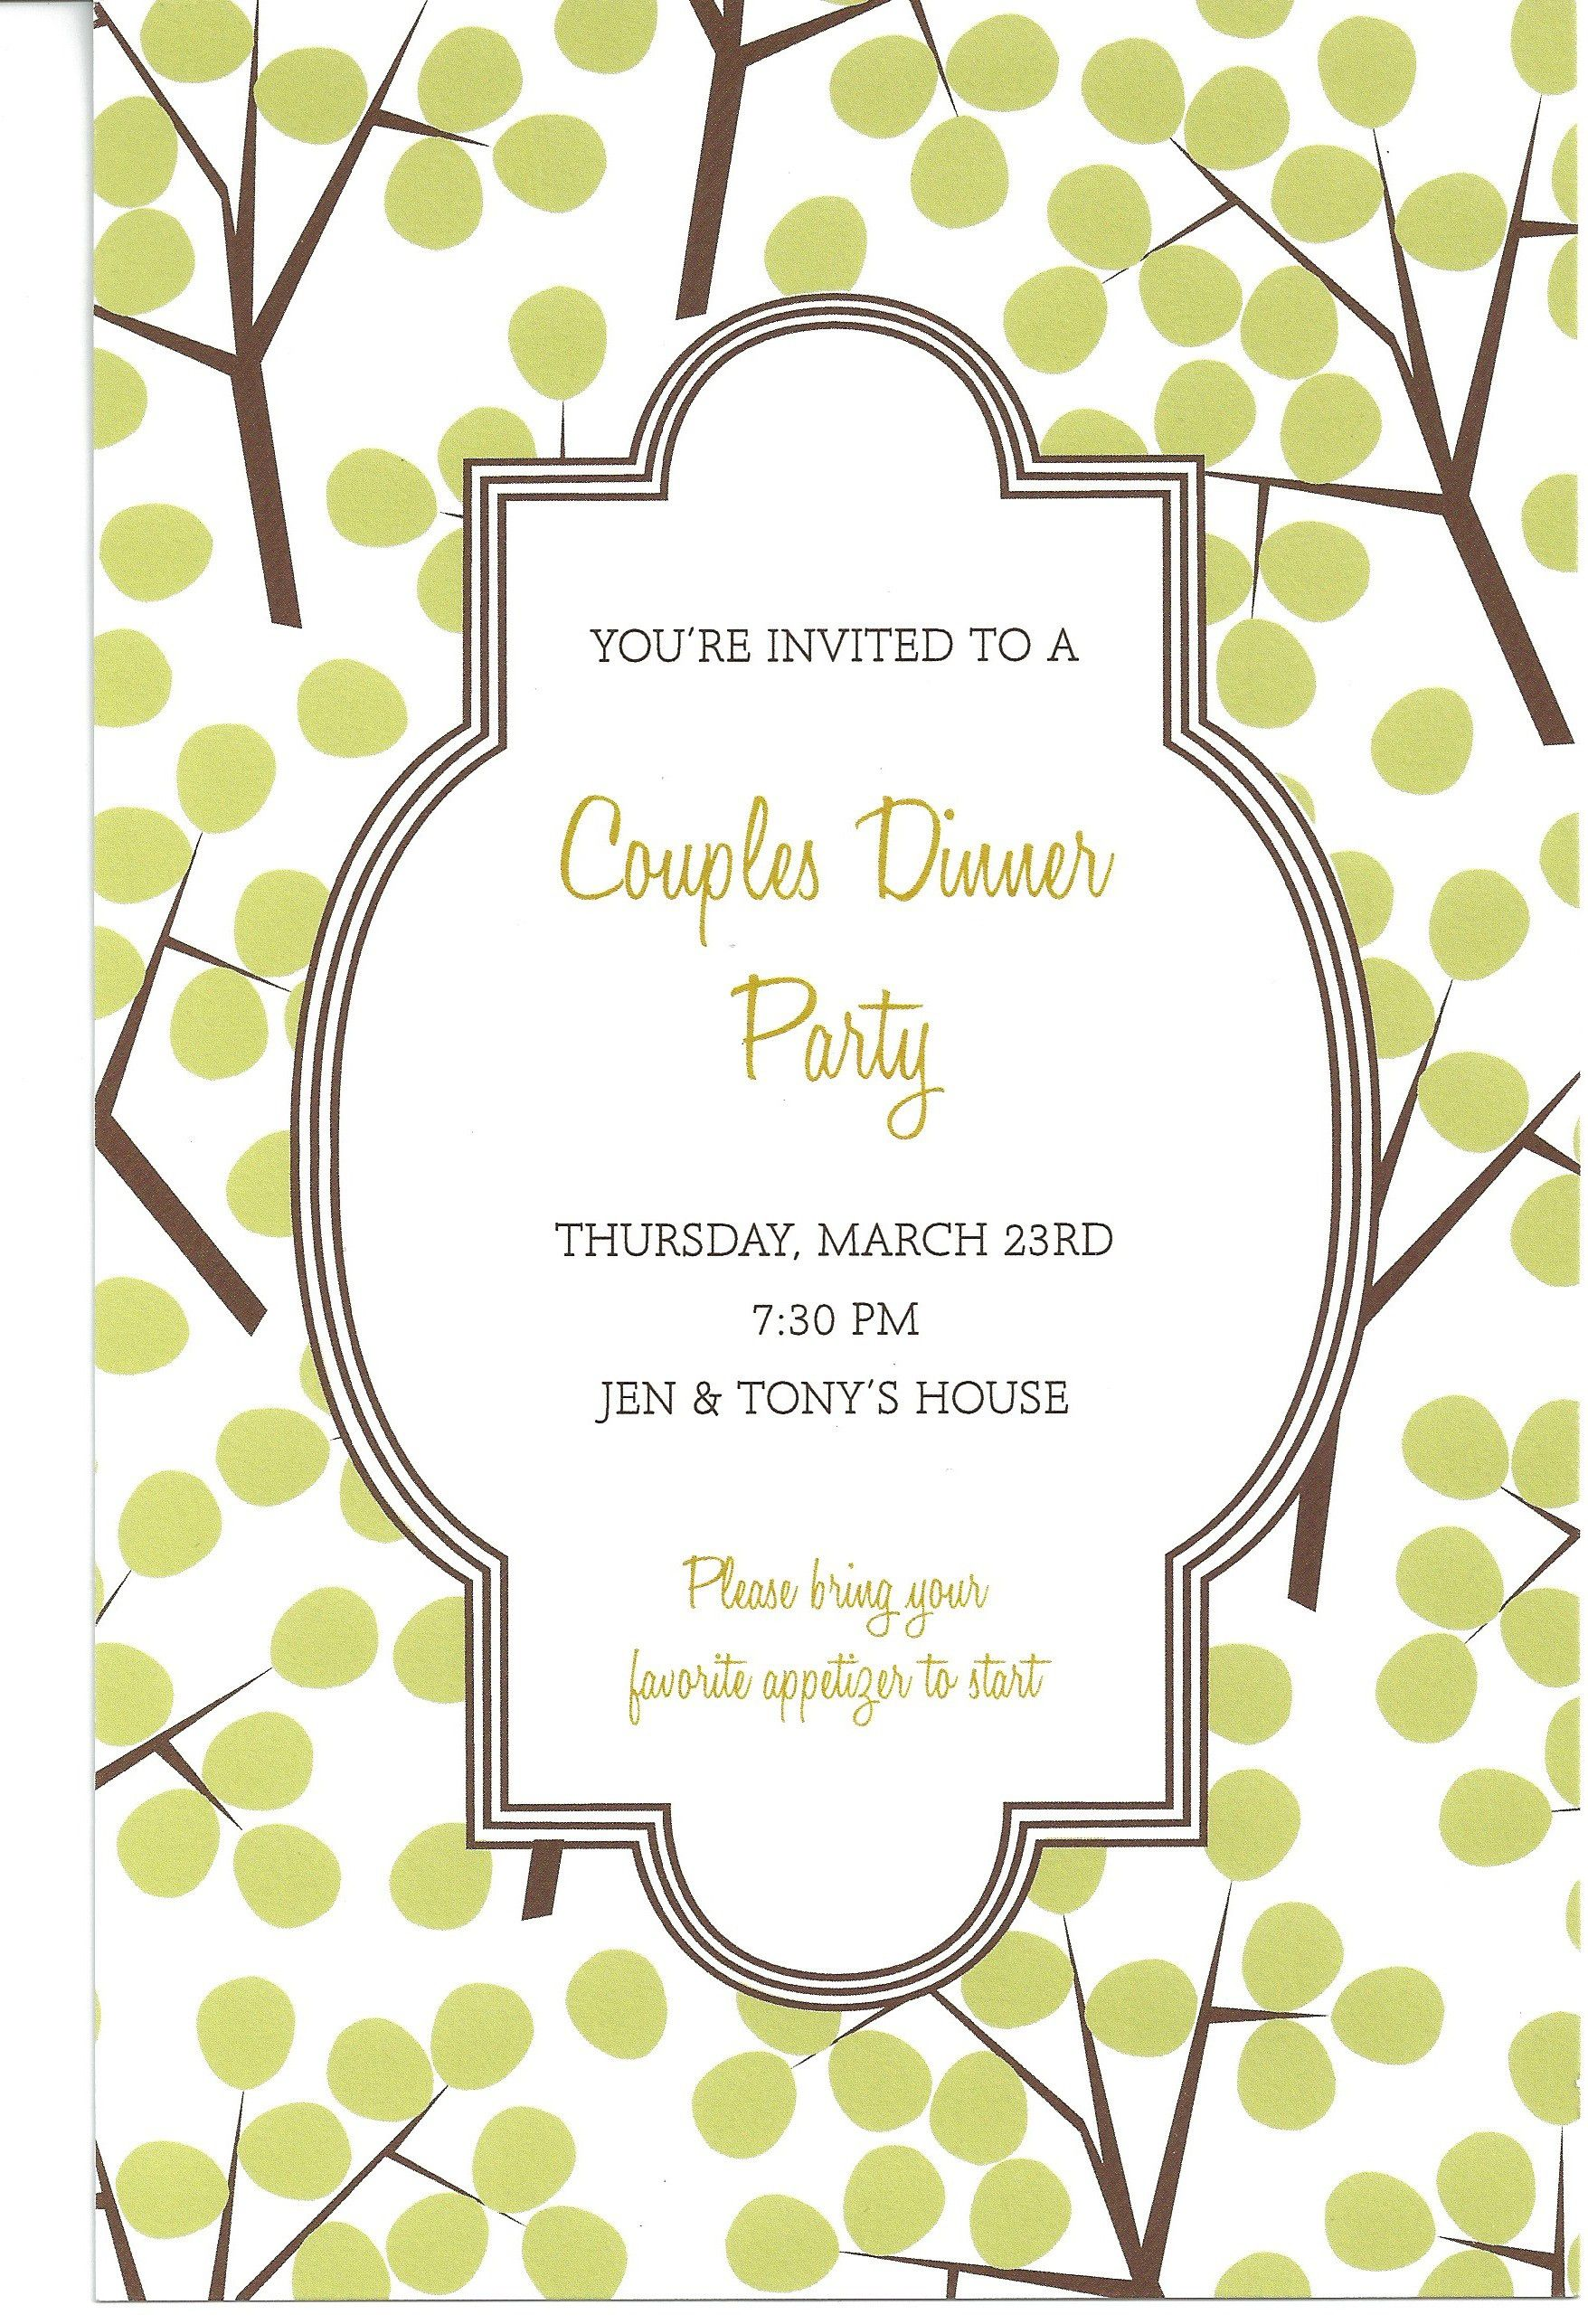 able dinner invitations templates funny able dinner invitations templates funny engagement invitation wording hd